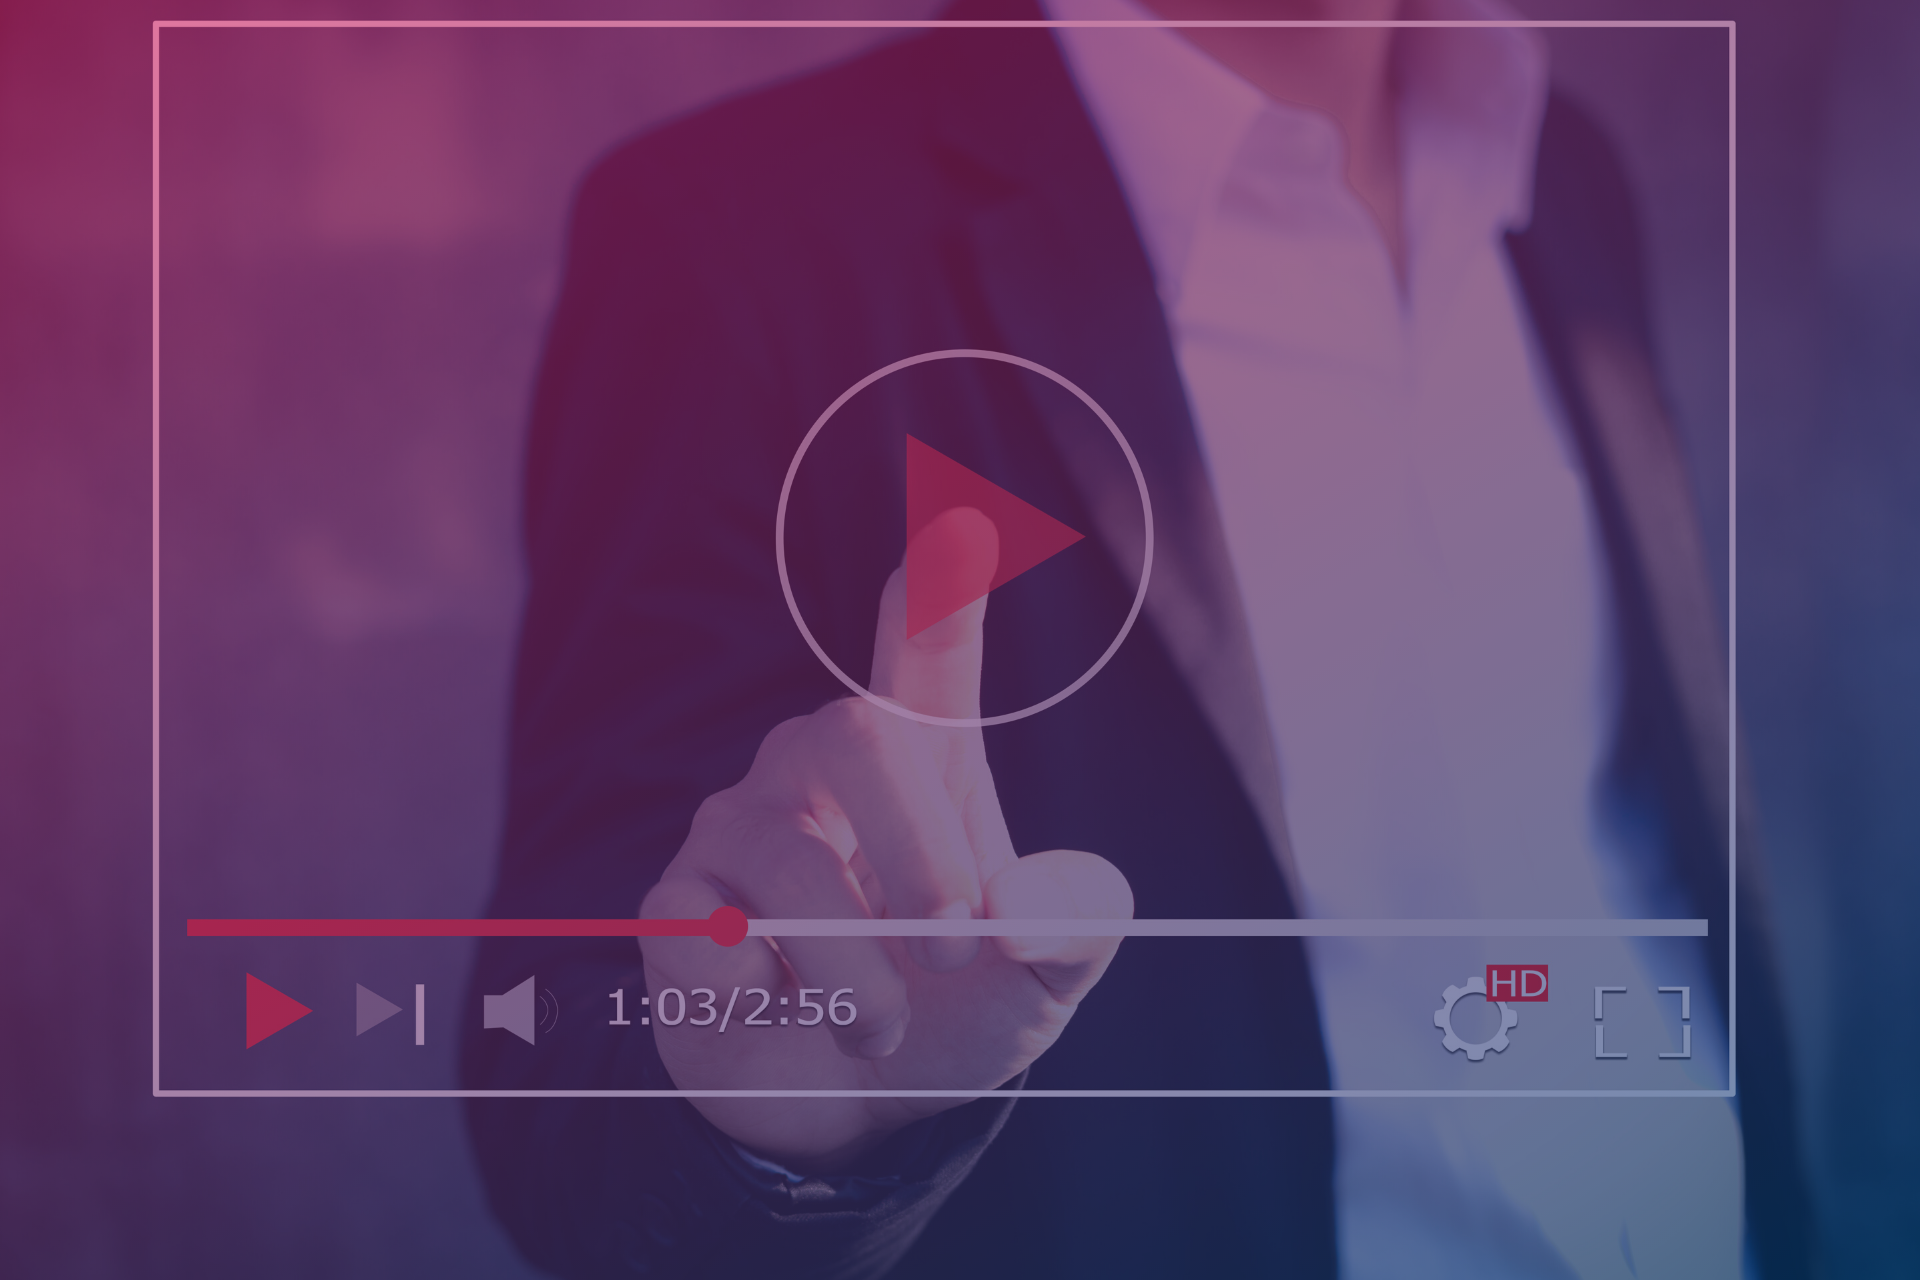 10 1 - How Can I Incorporate Videos Into My Marketing Strategy? - new-york-healthcare-marketing, healthcare-marketing-techniques, healthcare-marketing-strategy, healthcare-marketing-in-new-york, healthcare-marketing-agency, healthcare-digital-marketing